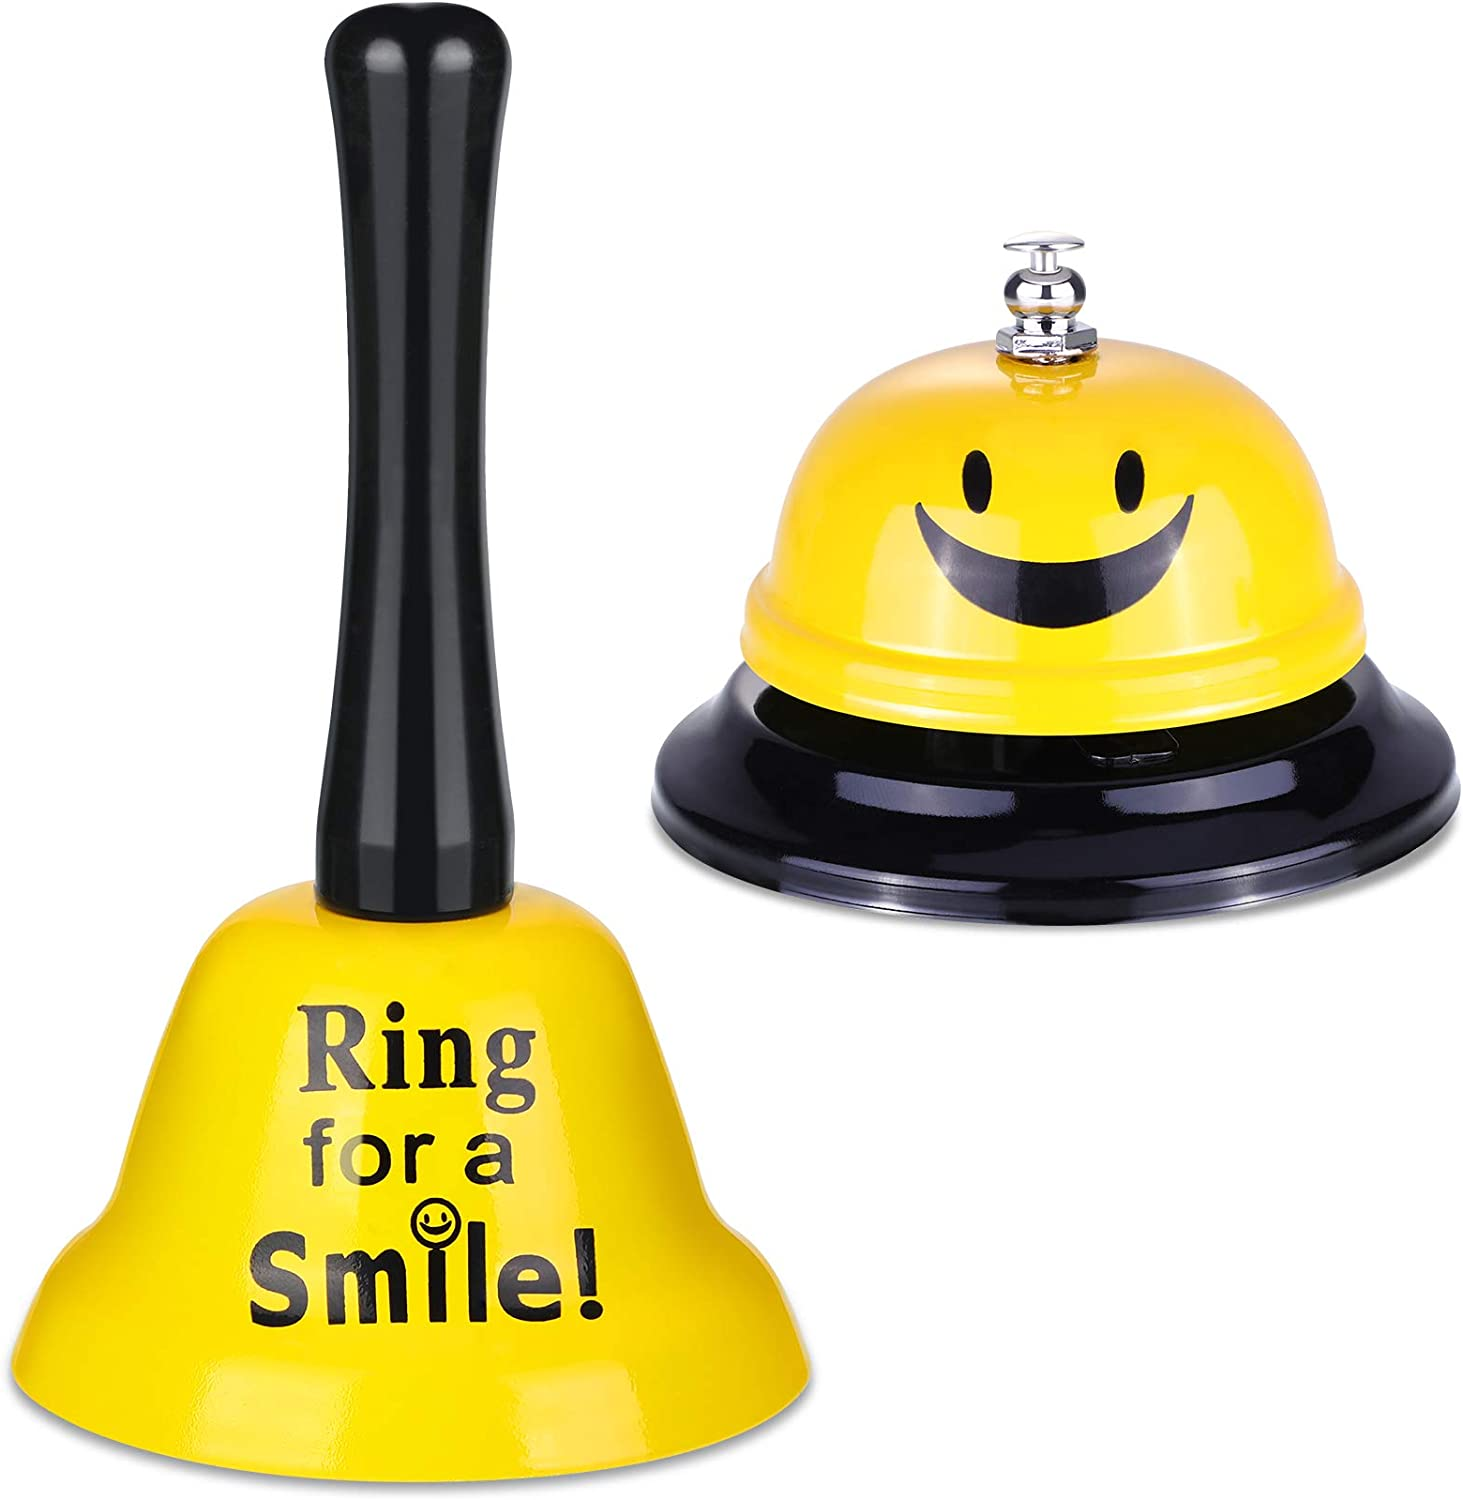 2 Pieces Ring Service Call Bell Smile Bell Hand Ringing Bell for Hotel Counter Reception Restaurant Food Line, Wedding Events Bell, 2 Styles